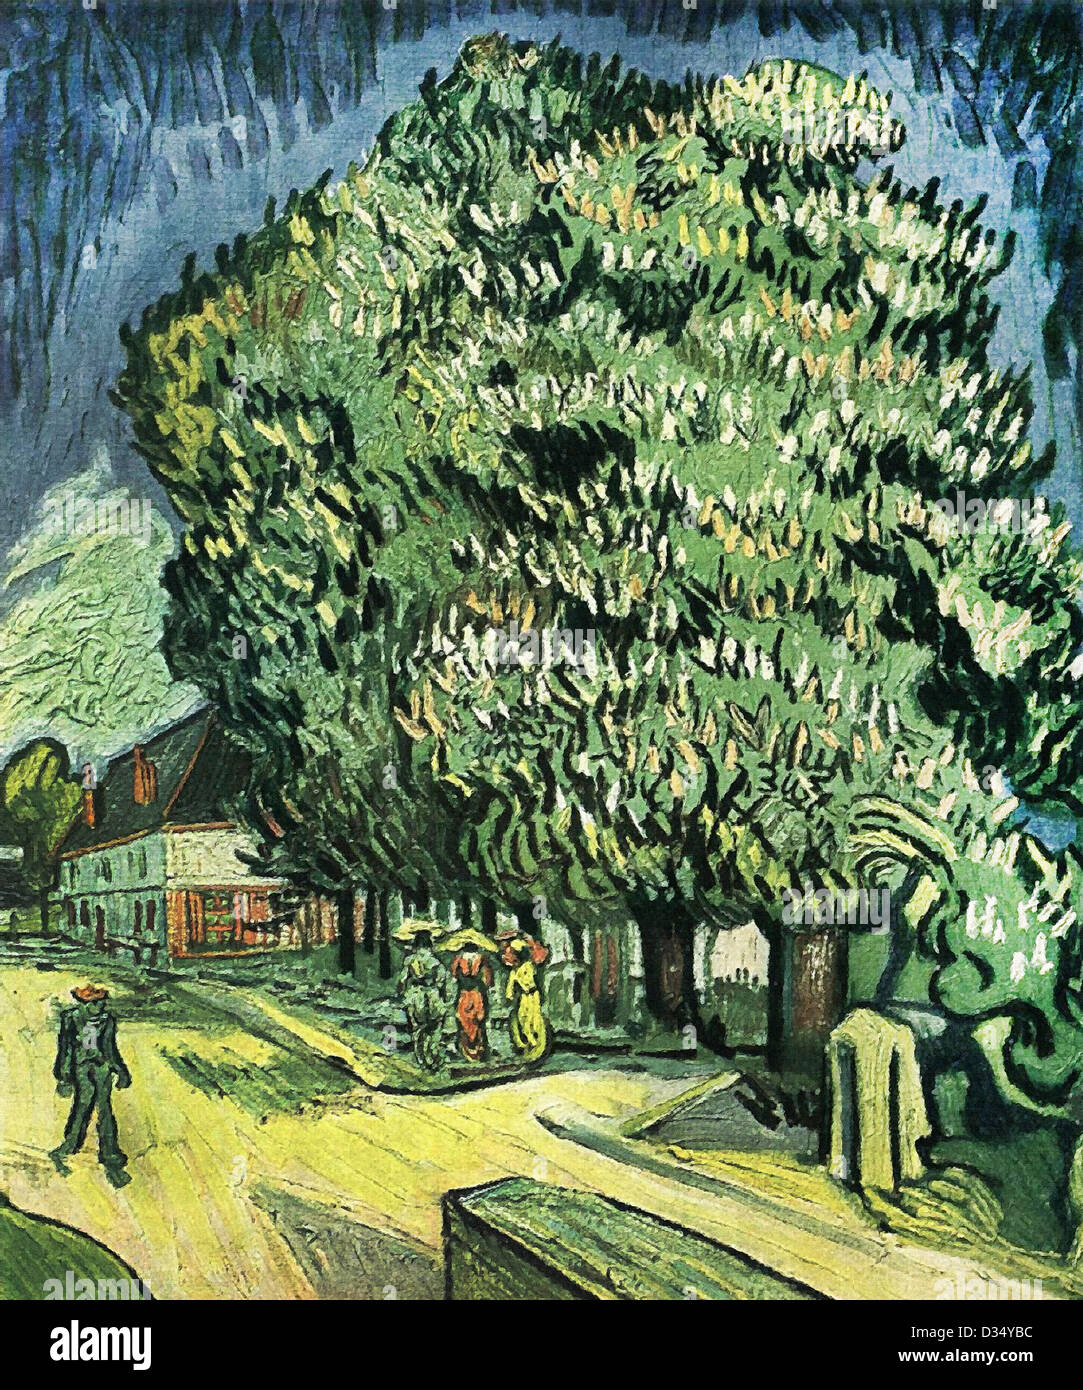 vincent van gogh kastanie baum in voller bl te 1890 post impressionismus l auf leinwand. Black Bedroom Furniture Sets. Home Design Ideas